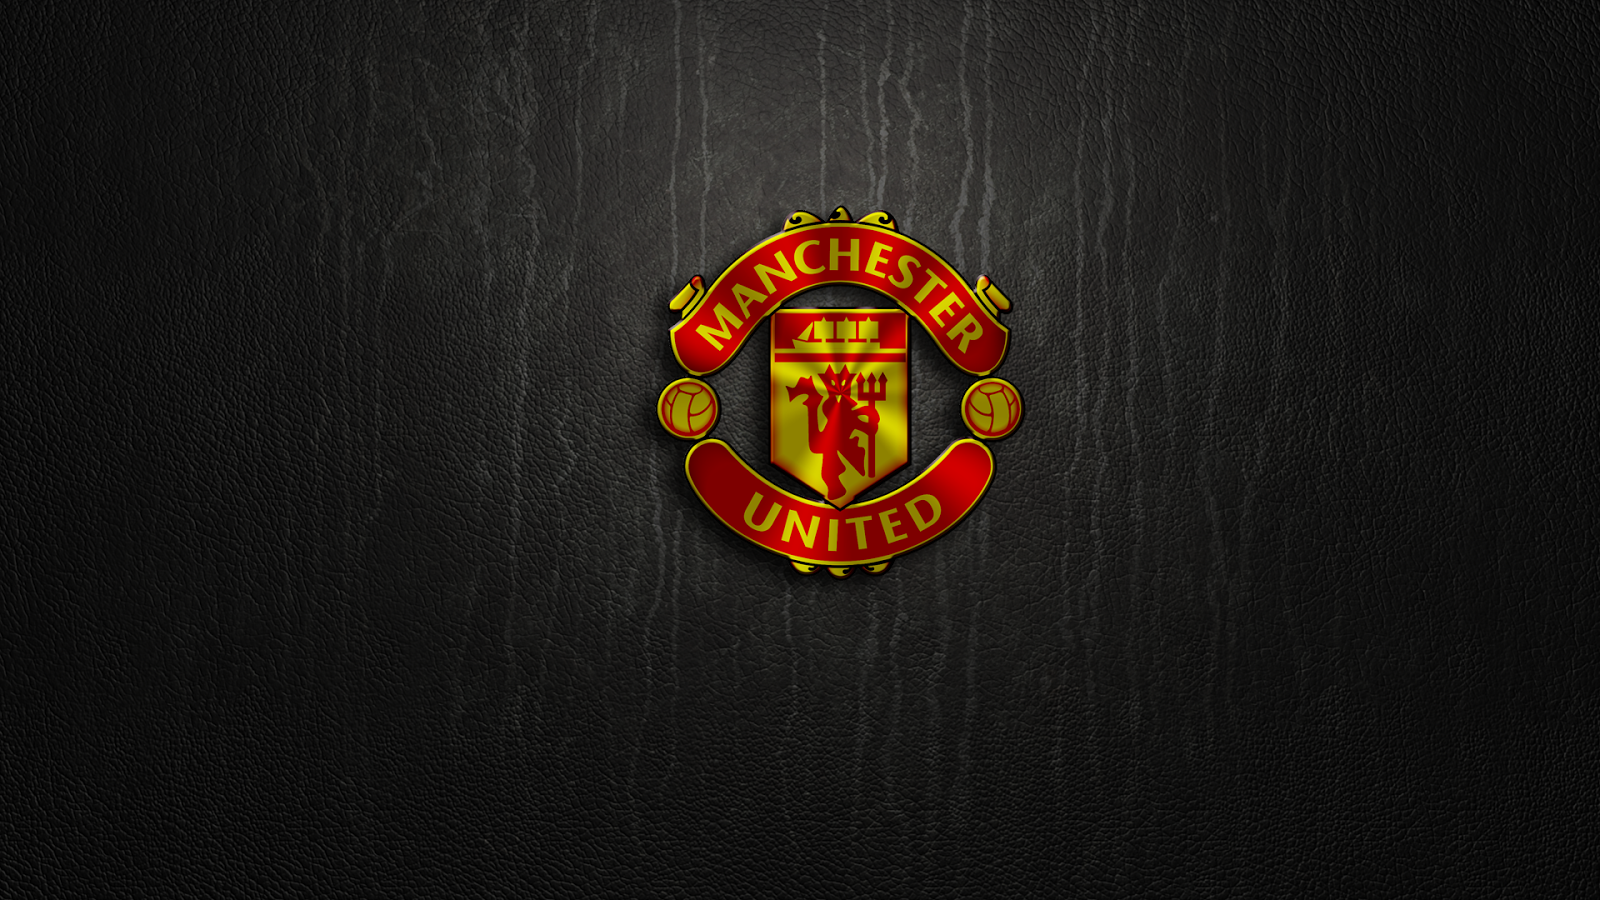 Man Utd Wallpapers 2016 Wallpaper Cave 1059408 Png Images Pngio